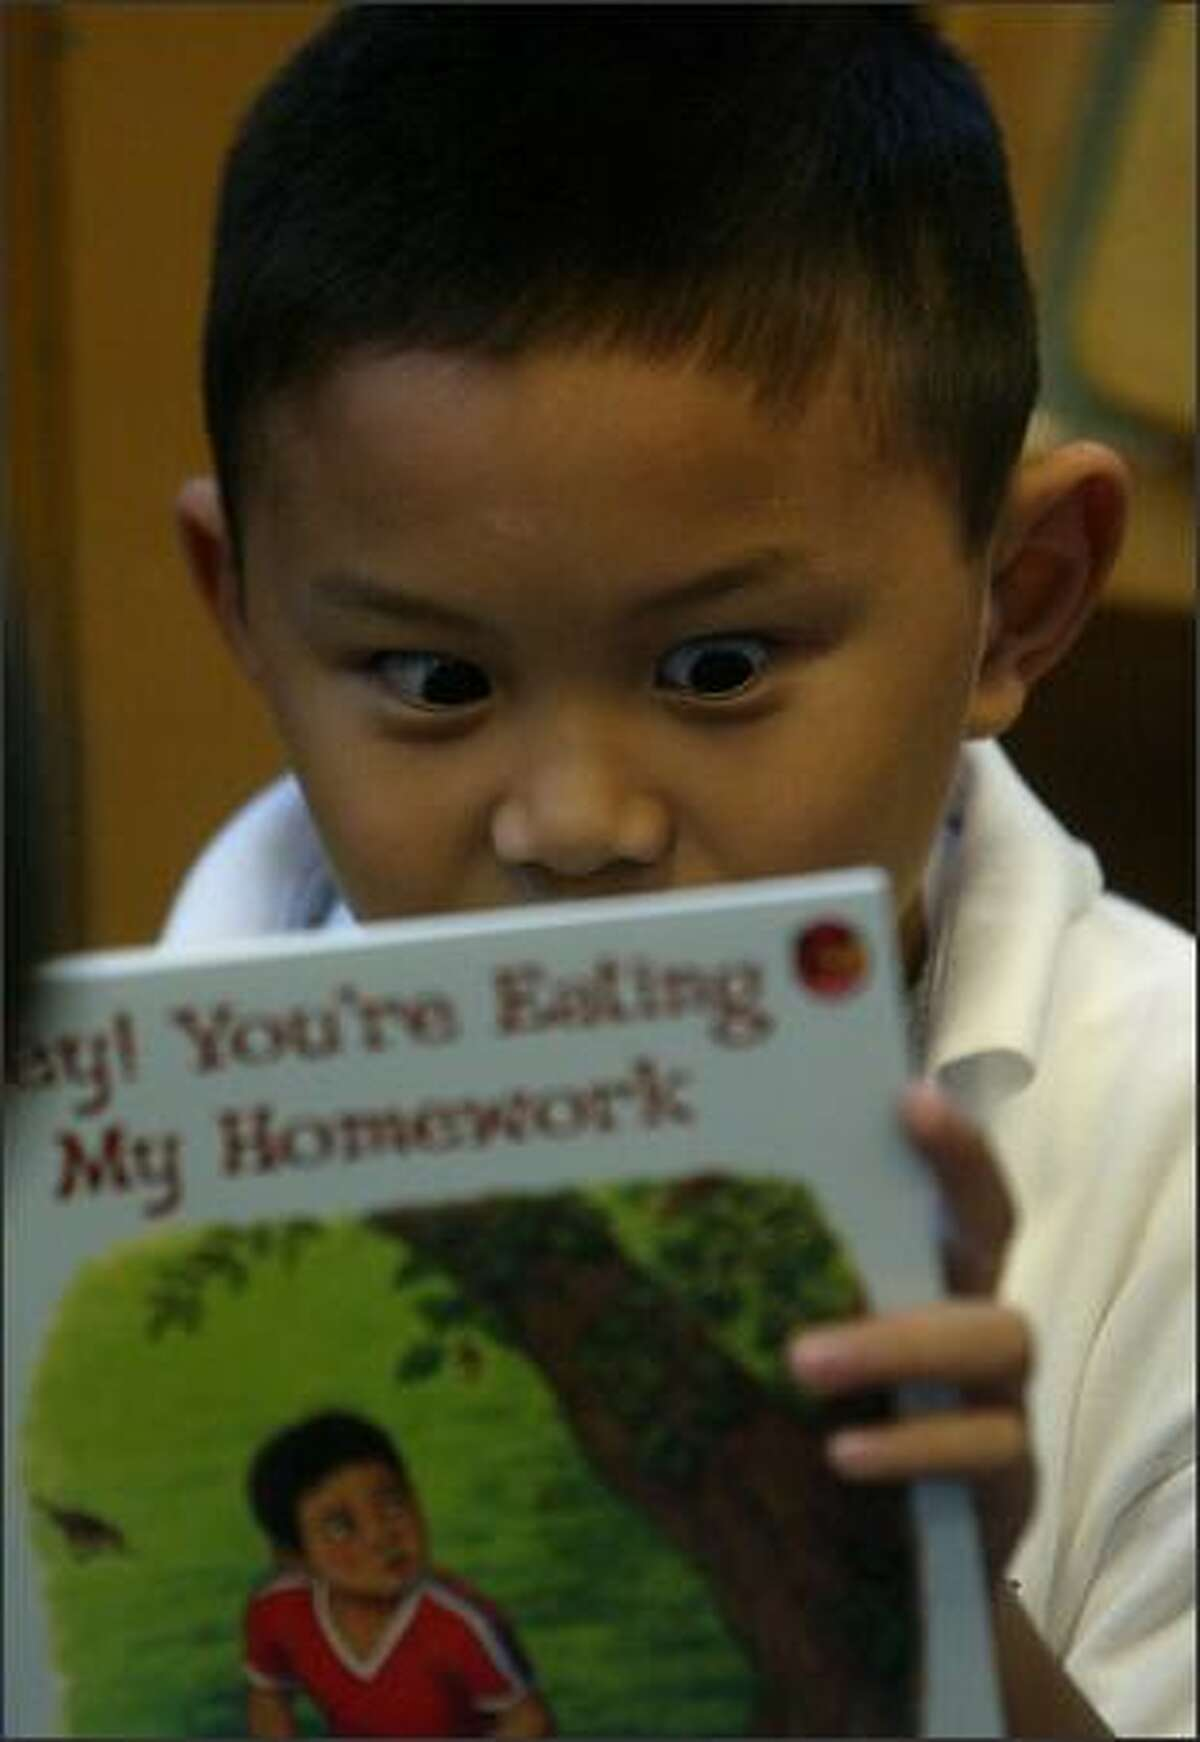 Second-grader Kevin Marin, 7, is riveted by a book. The Seattle district lets young students pick reading material at their level.